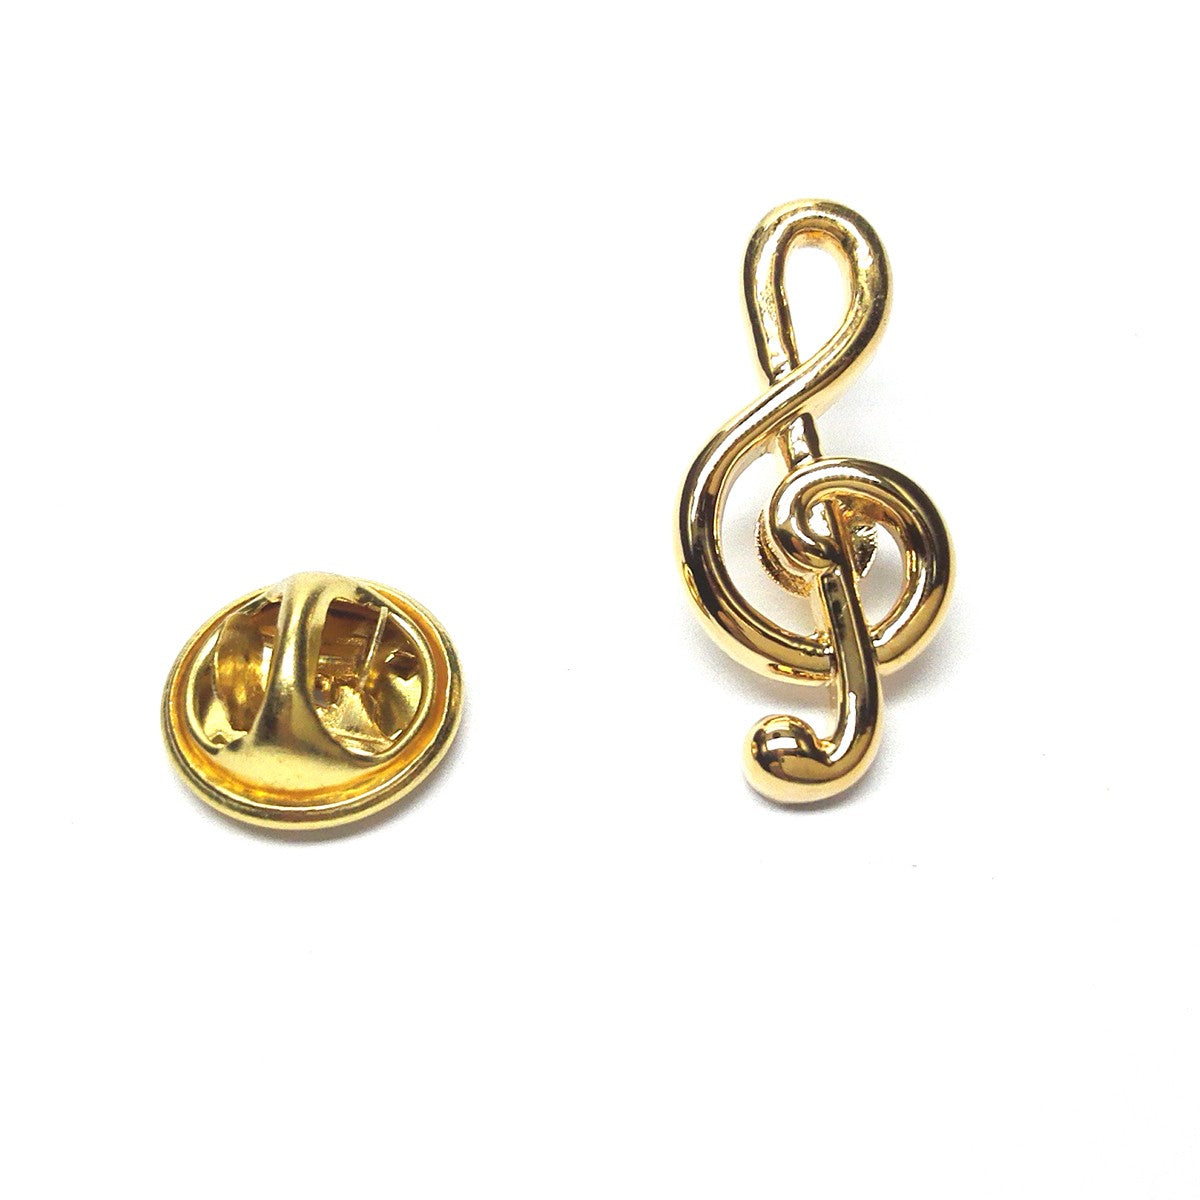 Gold Plated Treble Clef Lapel Pin Badge         (X2Ajtp133)Gold Plated Treble Clef Lapel Pin Badge         (X2Ajtp133)